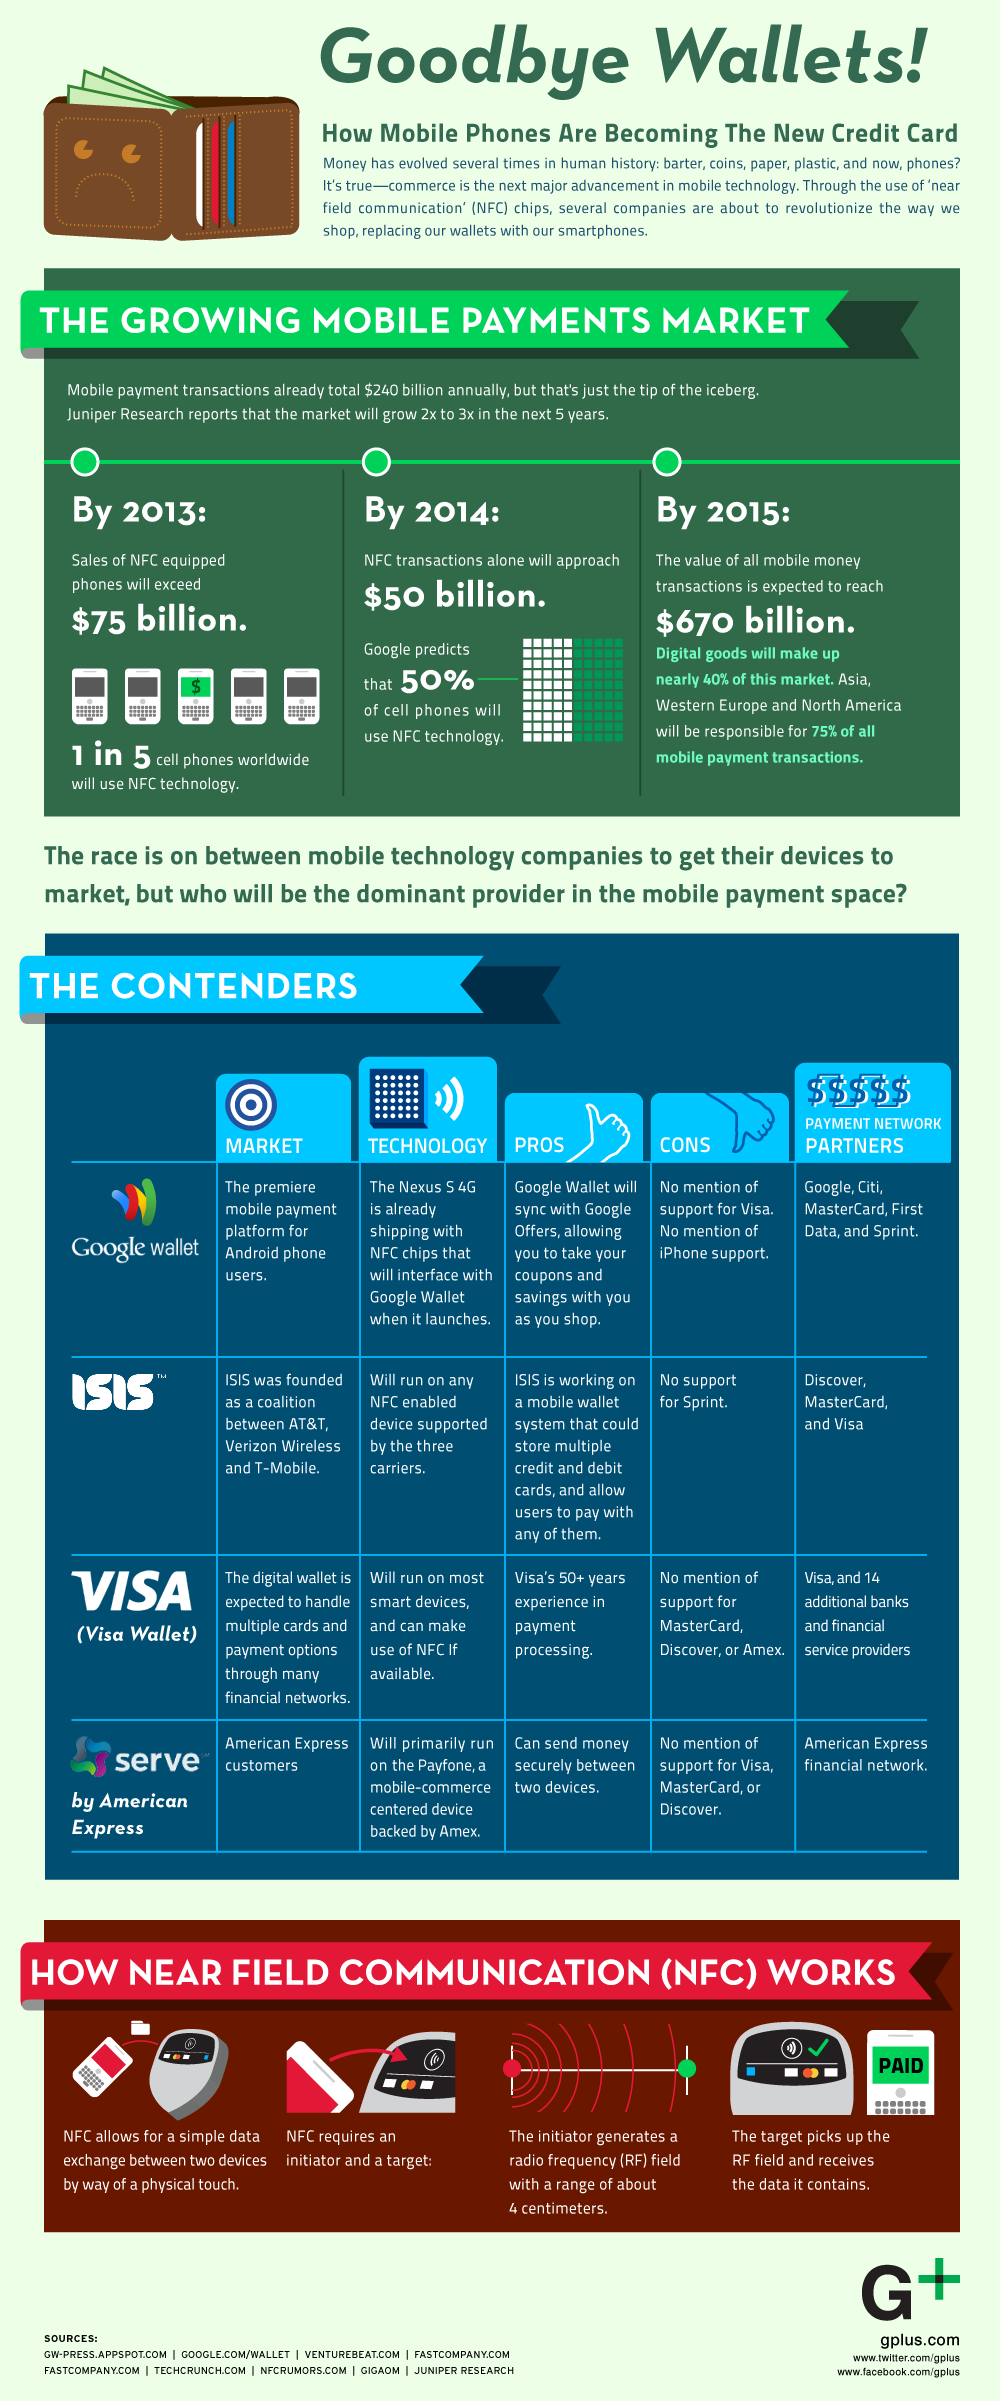 GLG Goodbye Wallets FINAL L 1841 How mobile phones are becoming the new credit card [Infographic]